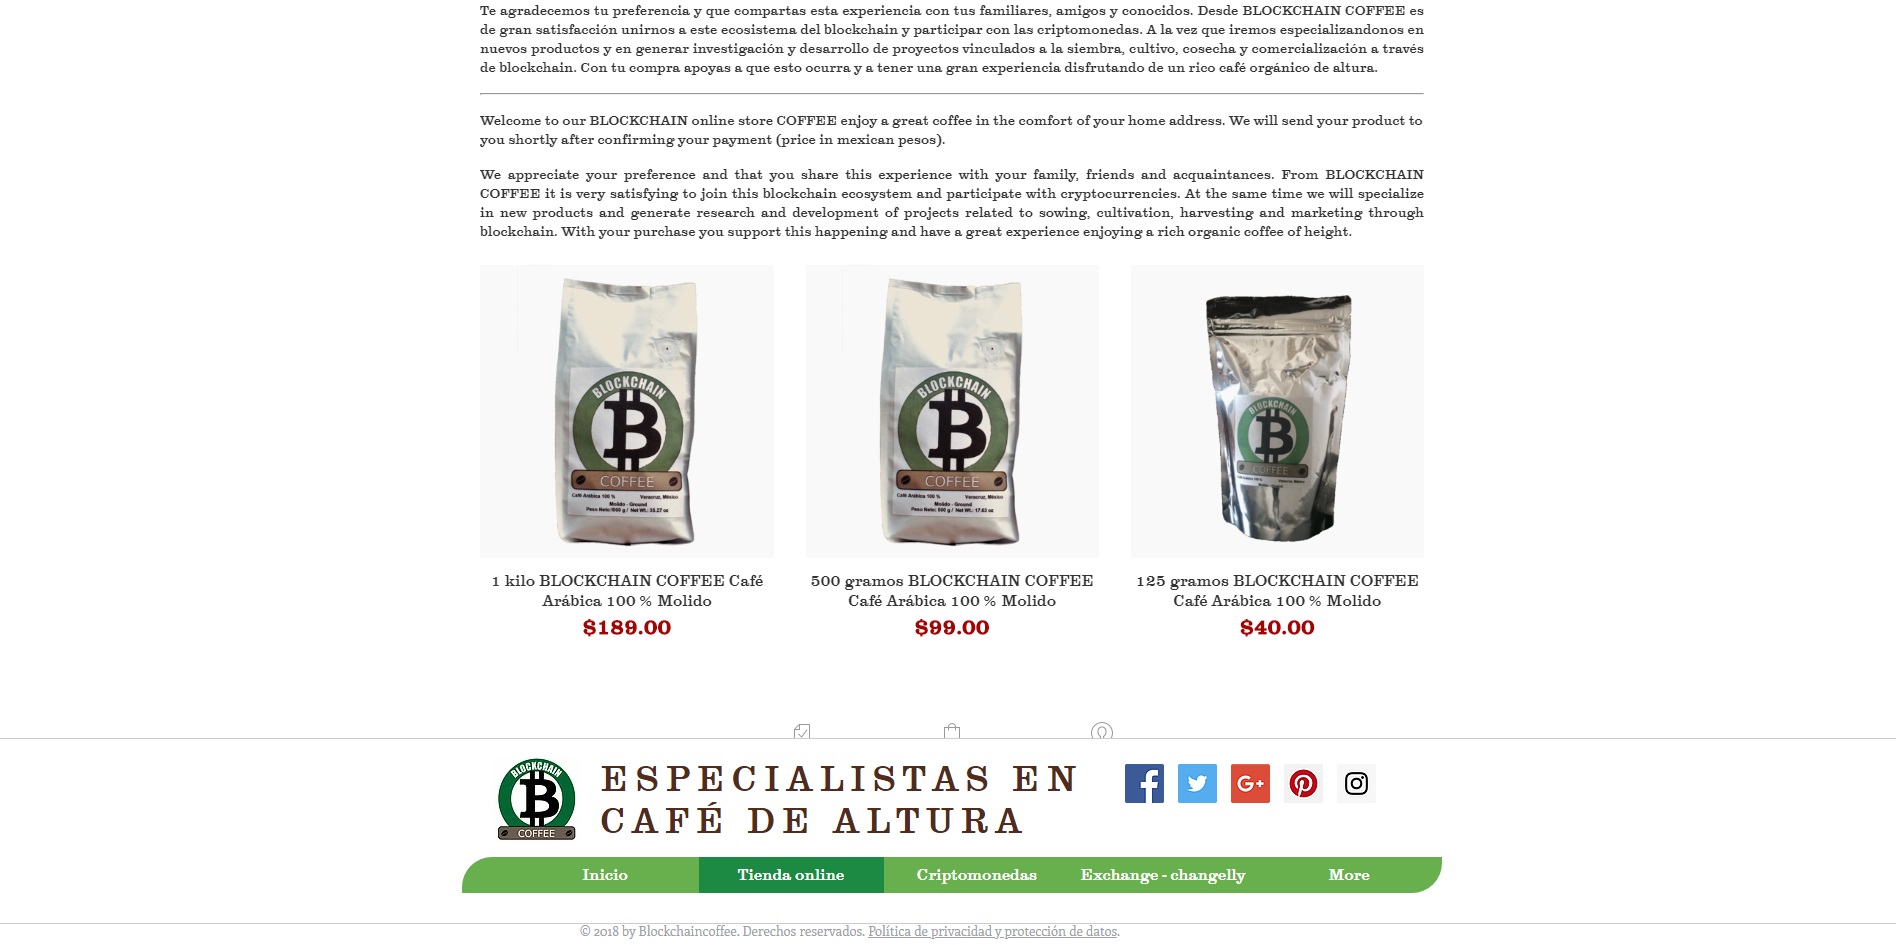 blockchain-coffee_1555321167.jpg